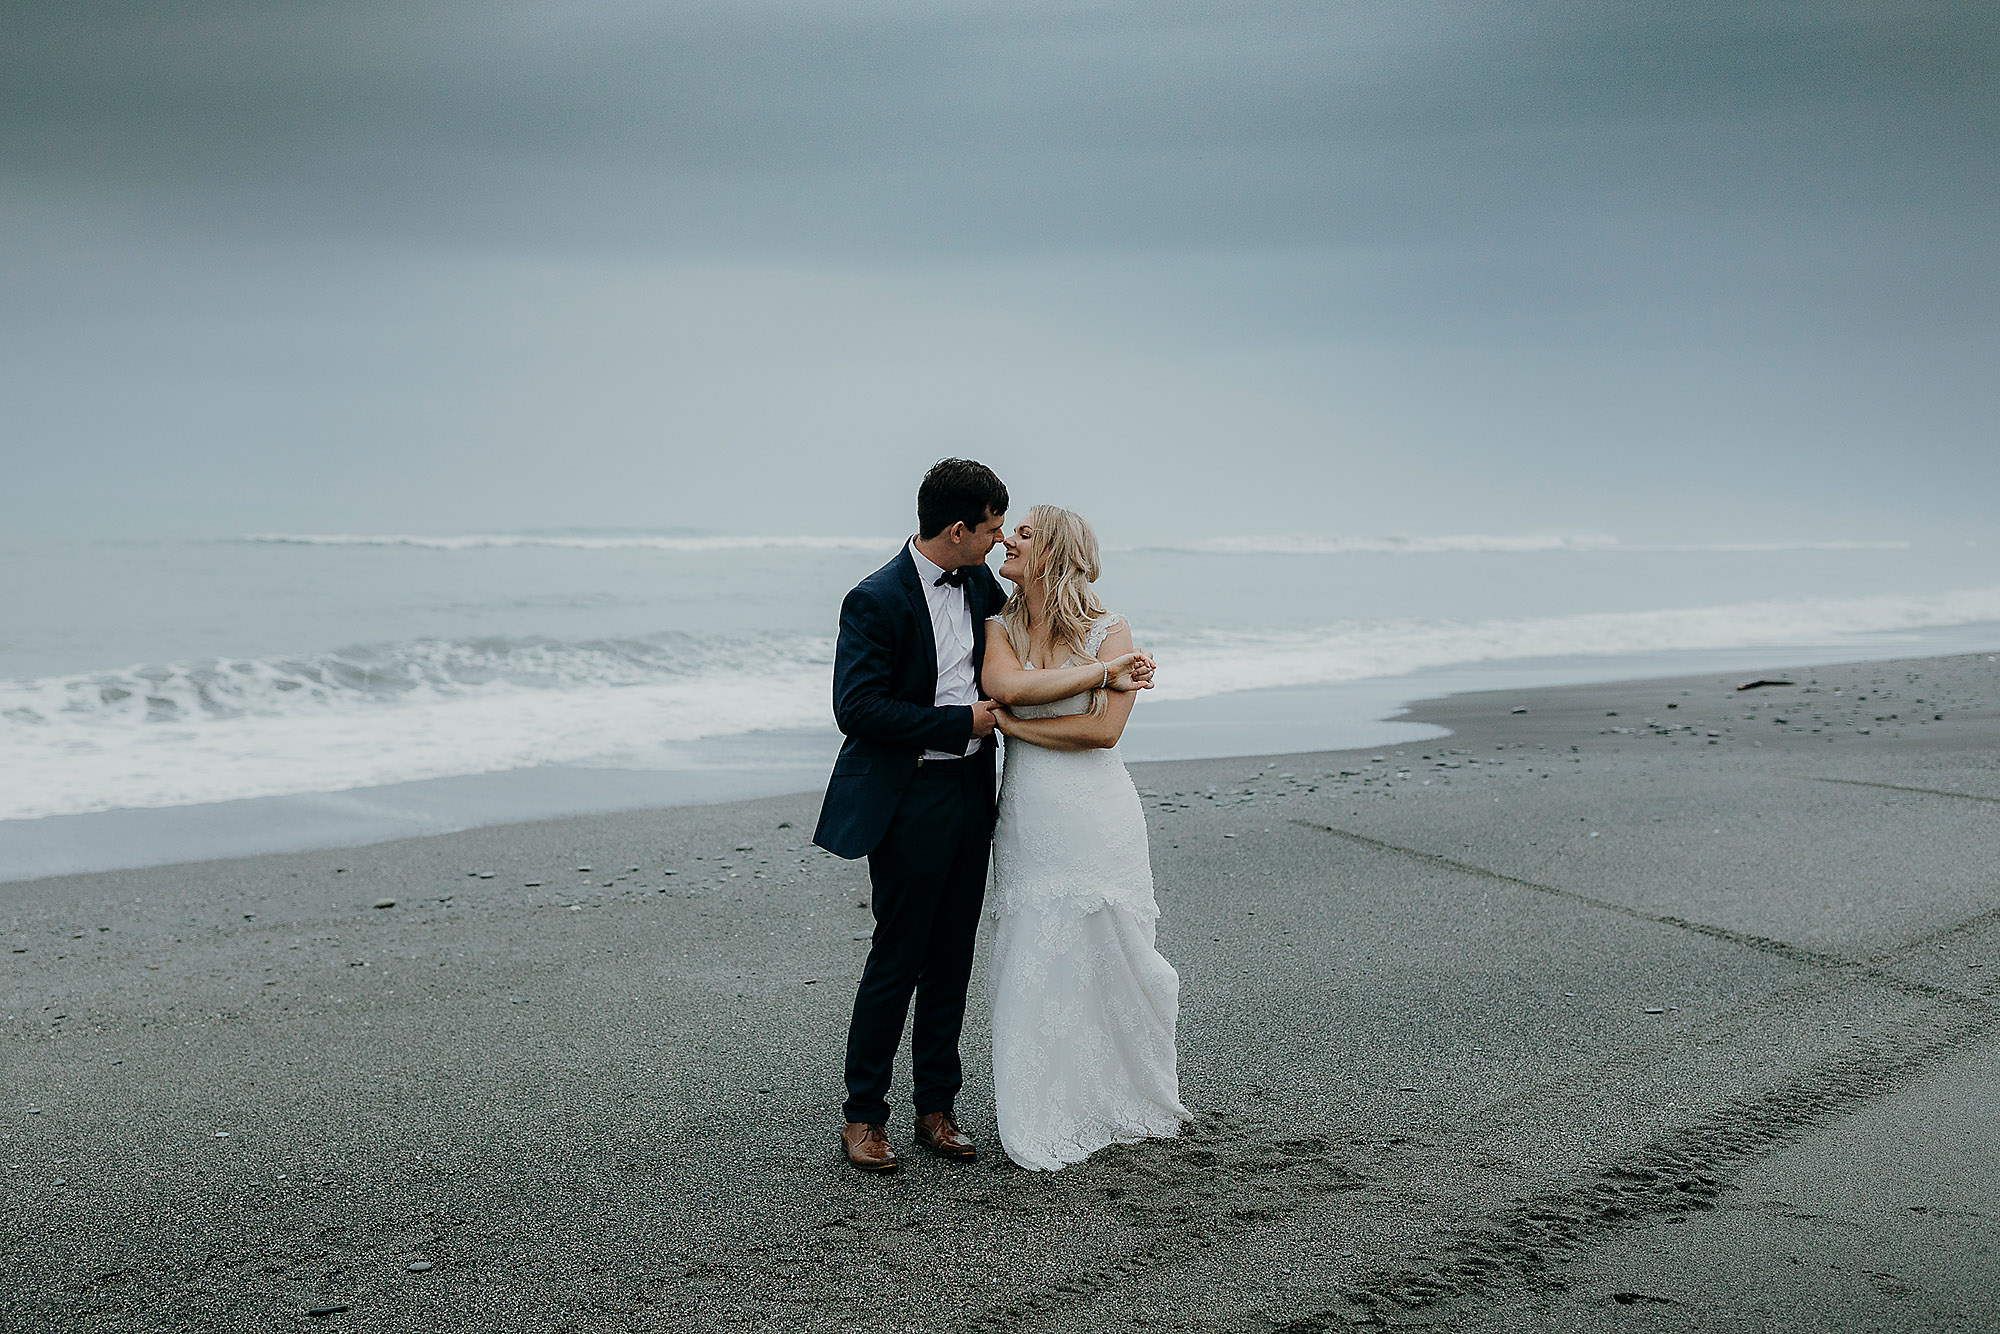 Christchurch Wedding Photographer bride and groom beach wedding hokitika New Zealand Rebecca Claridge Photography